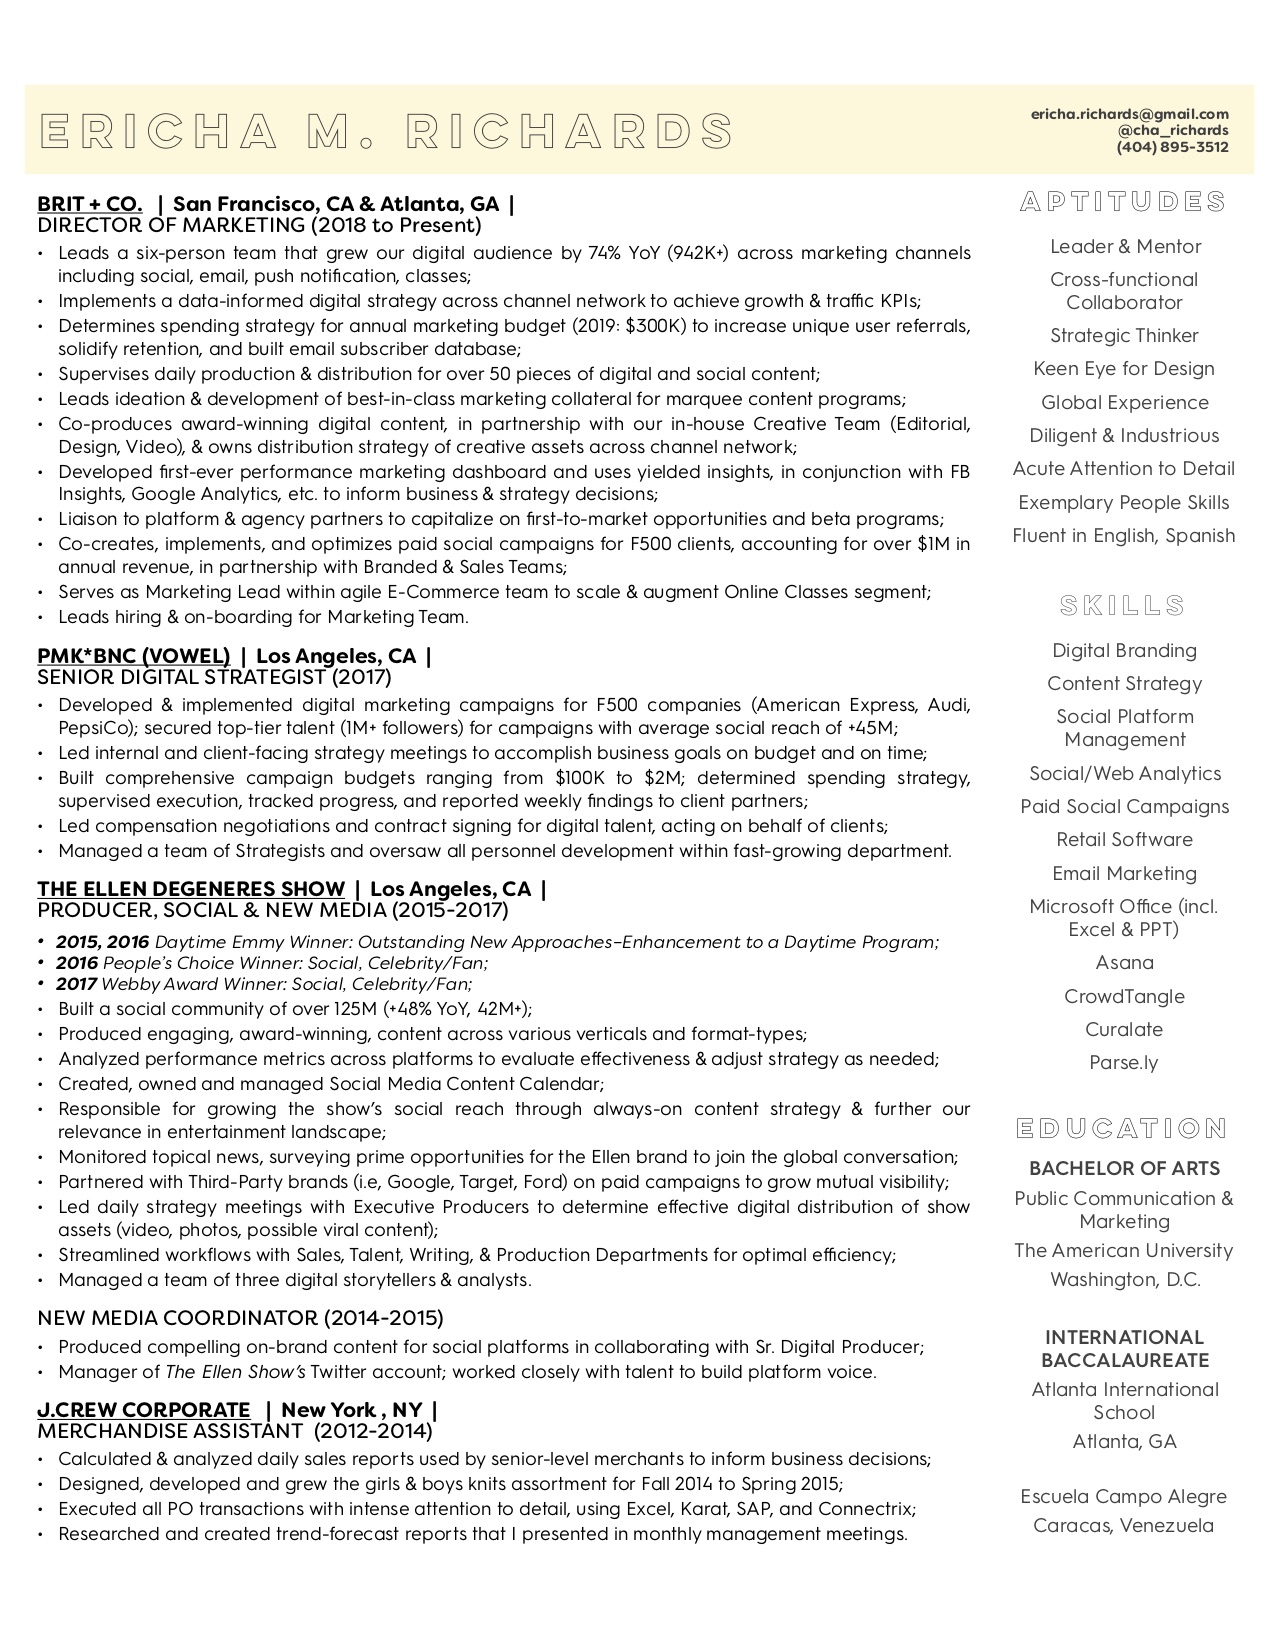 Ericha Richards CV (05_2019).jpg